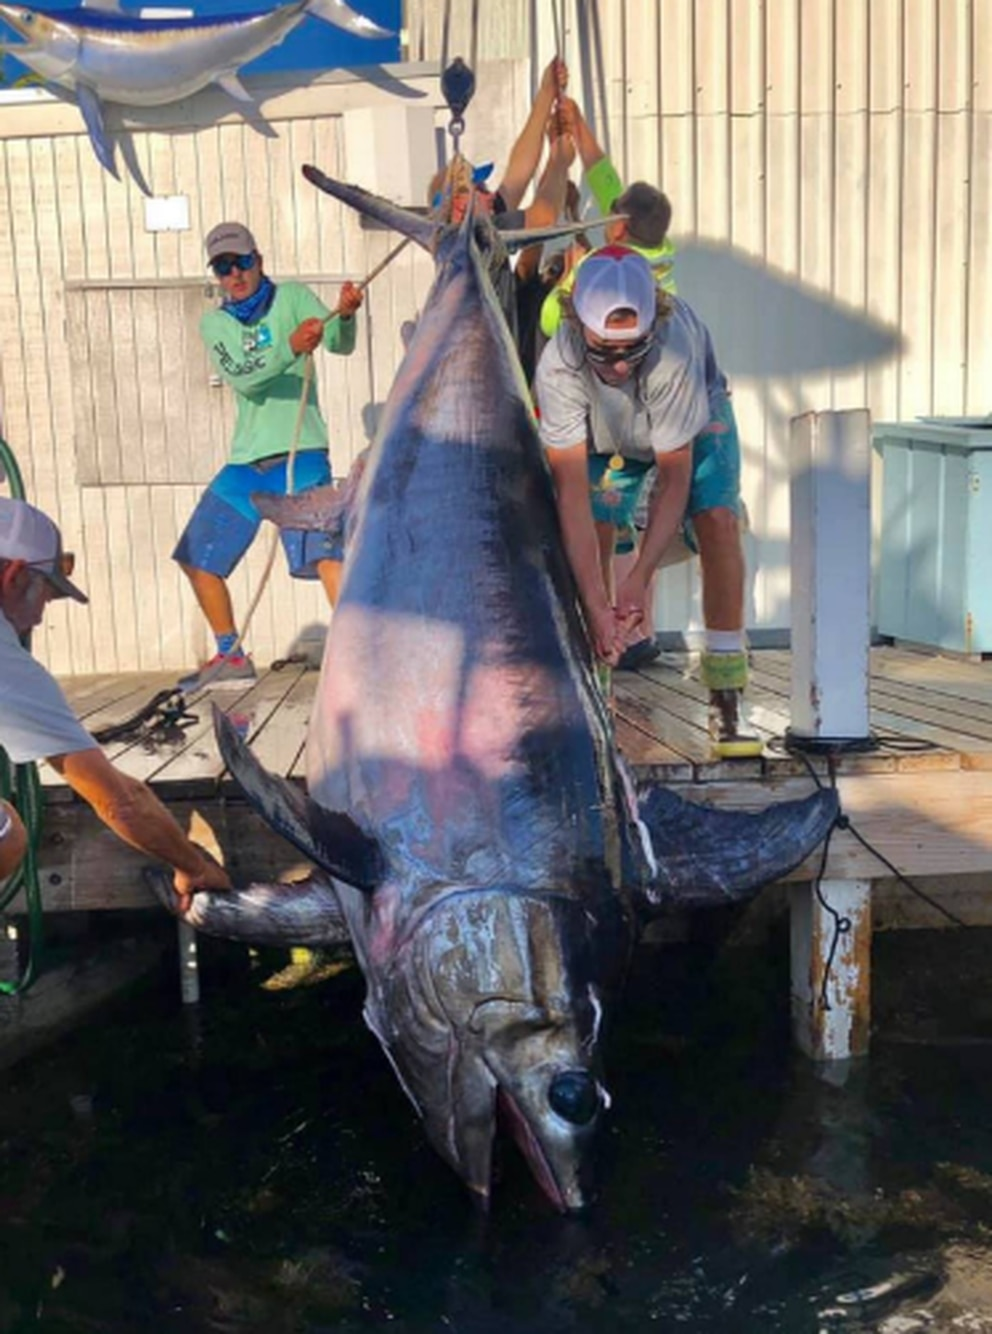 A large swordfish is pulled onto the dock at Bud 'N' Mary's Marina in Islamorada on March 31, 2019. Courtesy of Nick Stanczyk